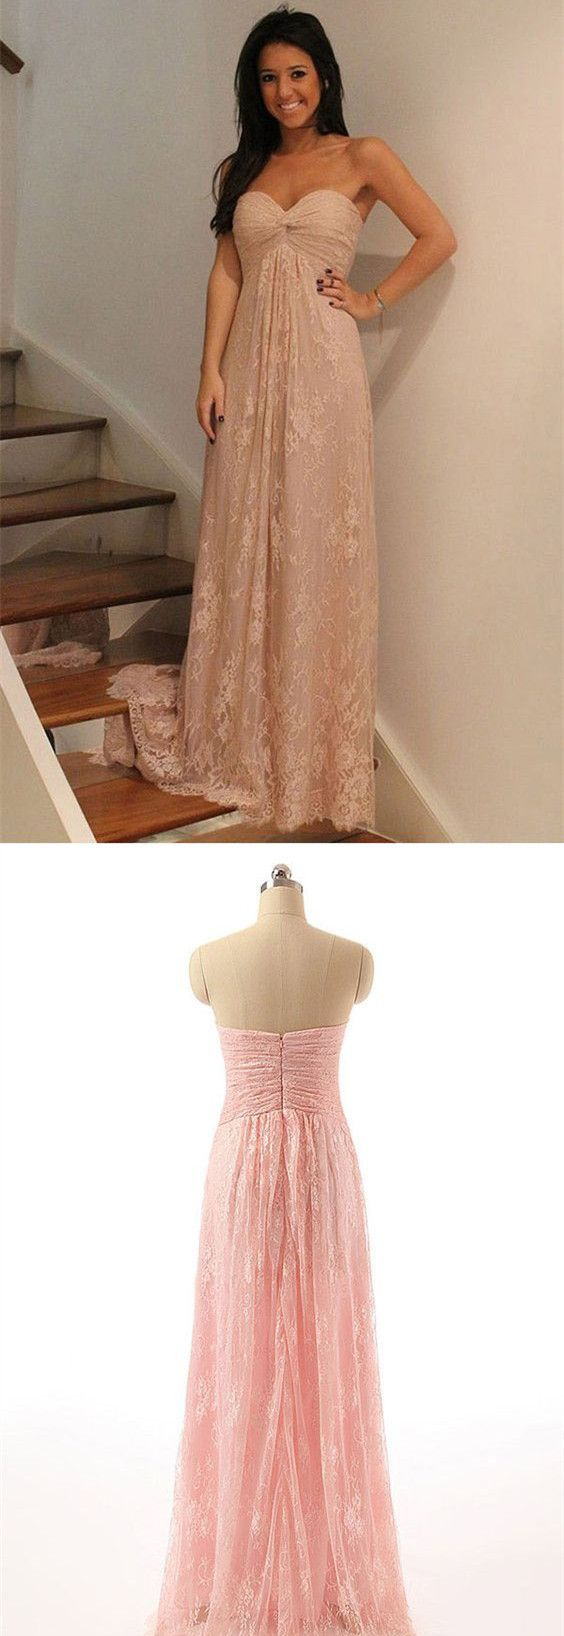 Strapless prom dress pink party dress lace prom dress for teens in